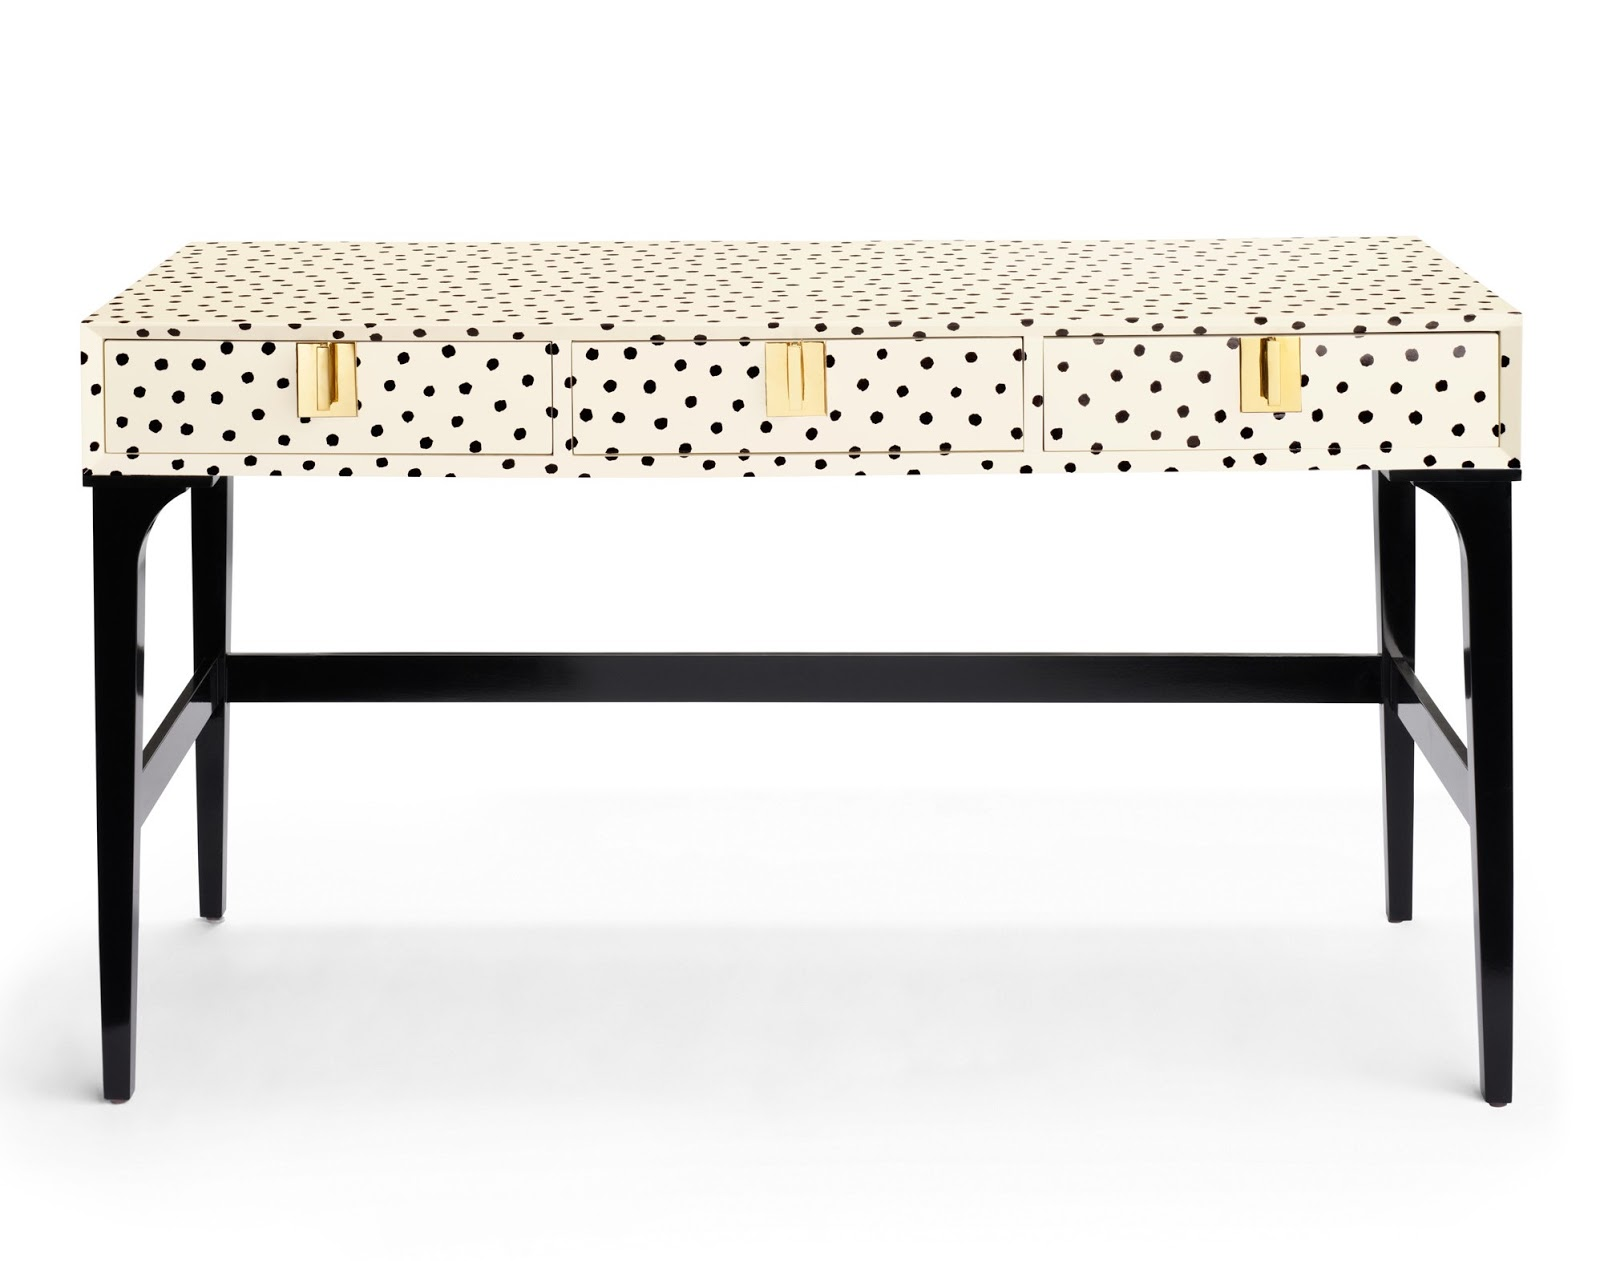 The Polka Dotted Truth by Jacqueline Harbin Kate Spade